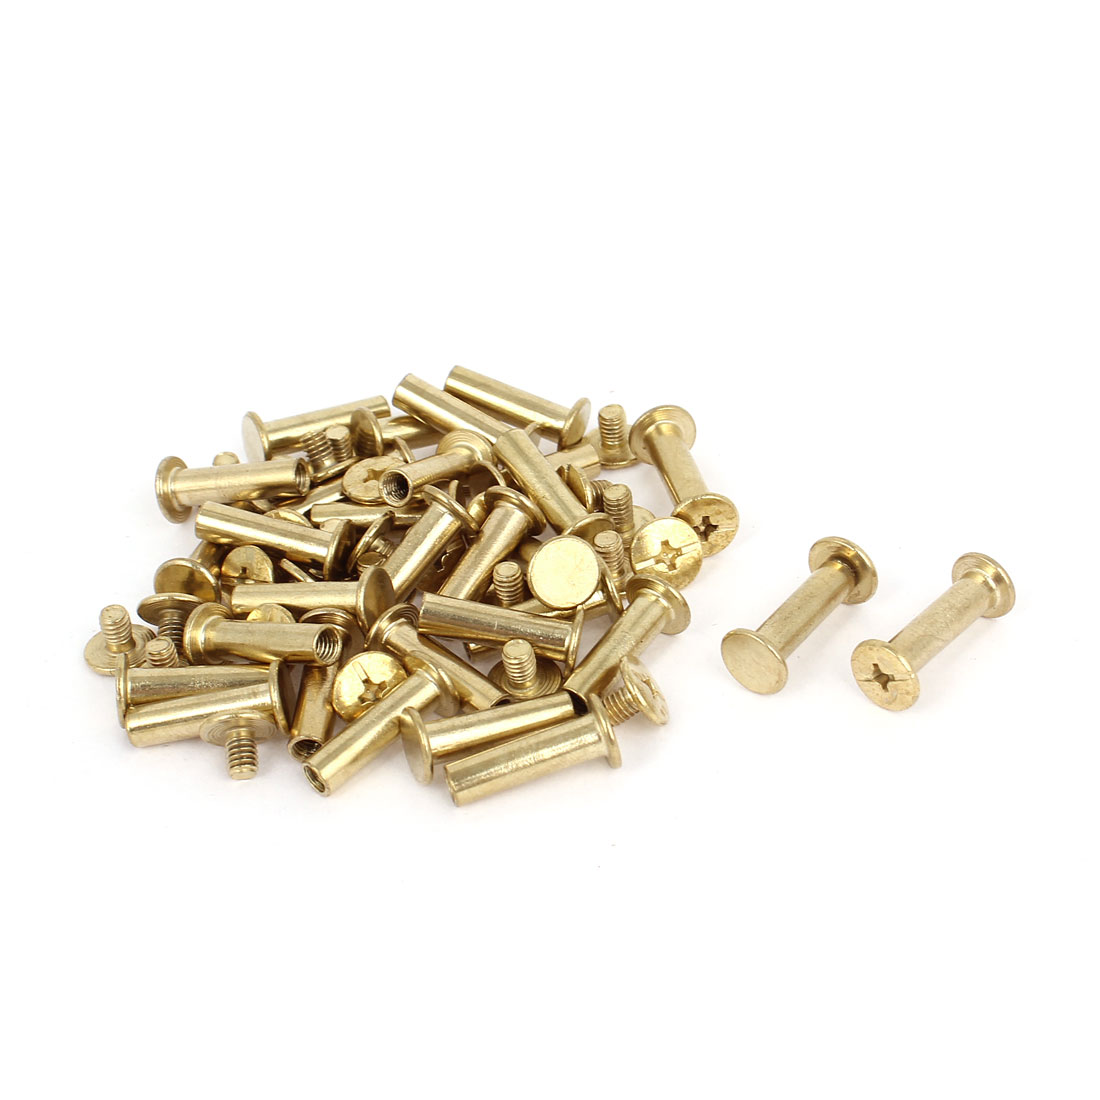 Brass Plated 5x18mm Binding Chicago Screw Post 30pcs for Leather Scrapbook